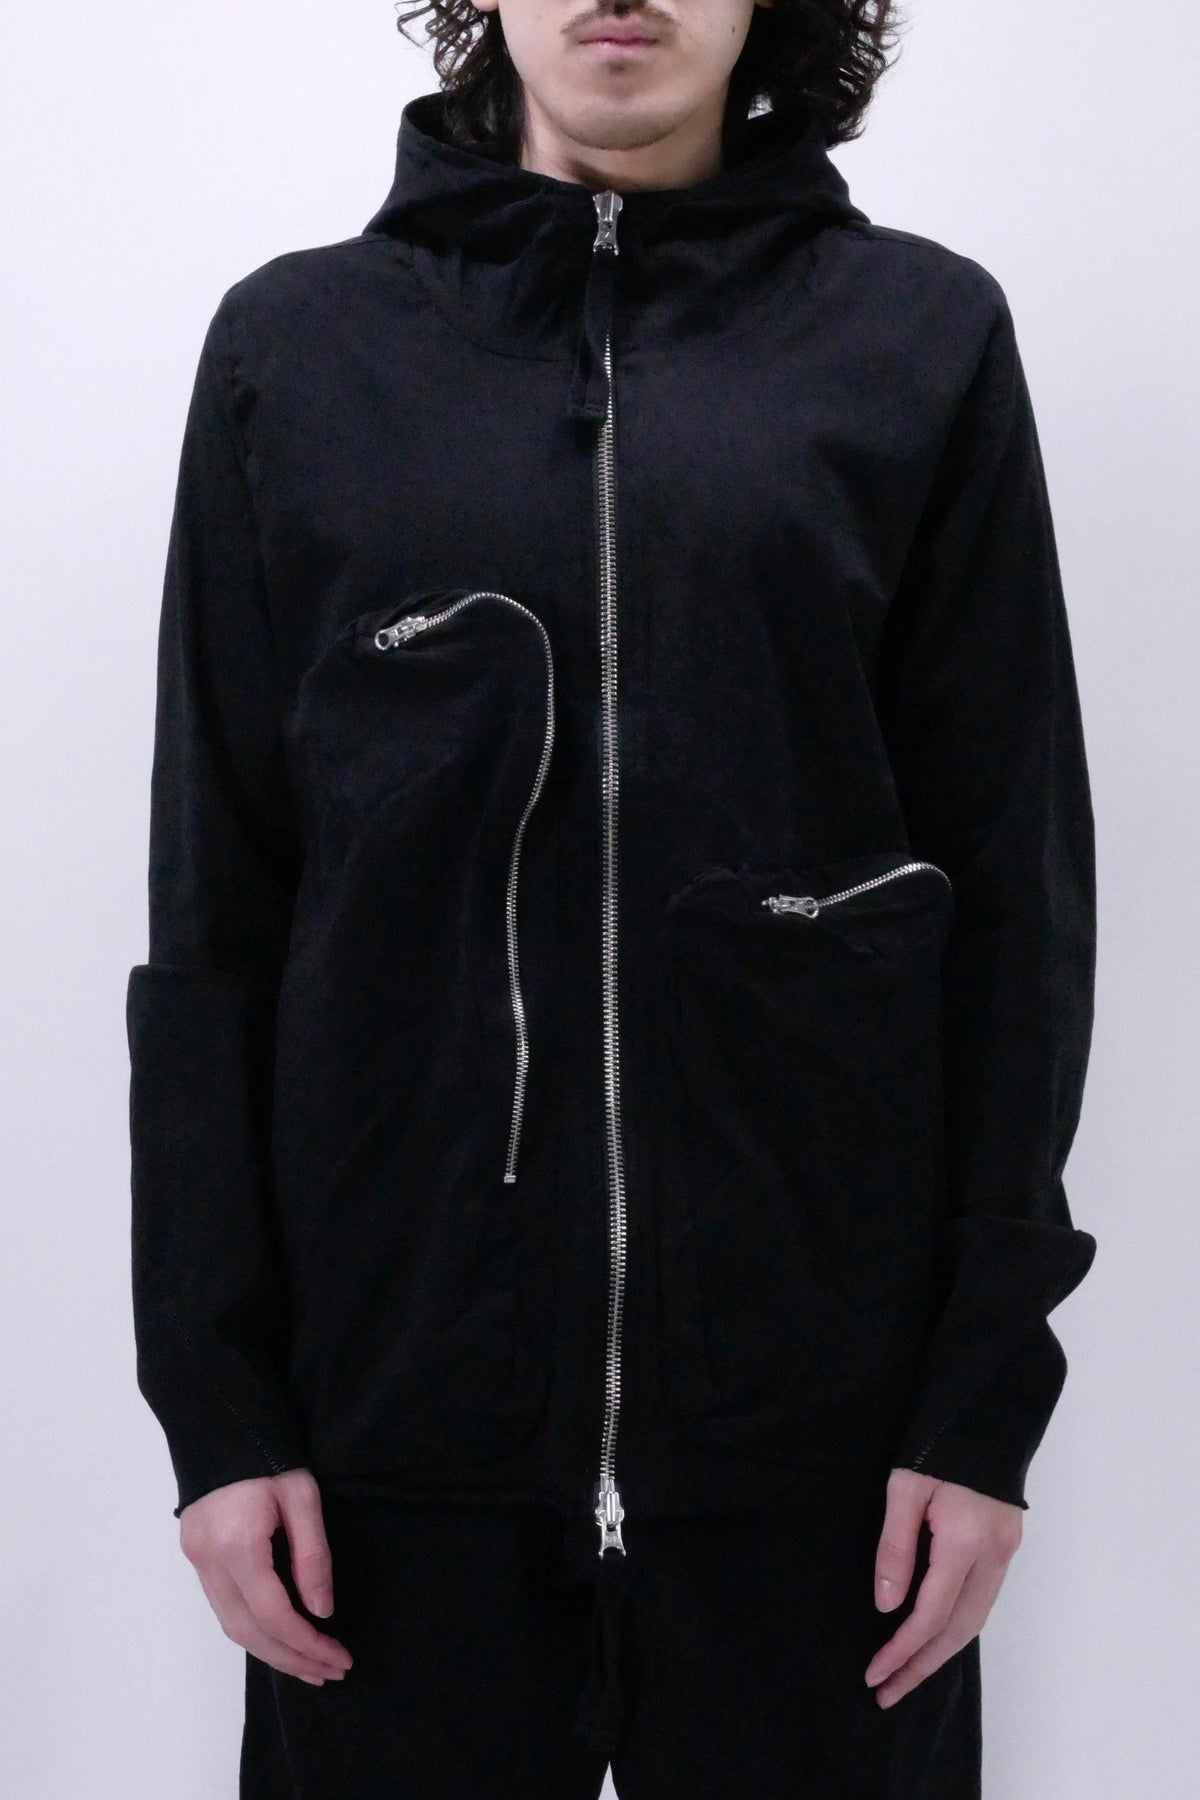 Thom/Krom M SJ 447 Hooded Jacket - Black